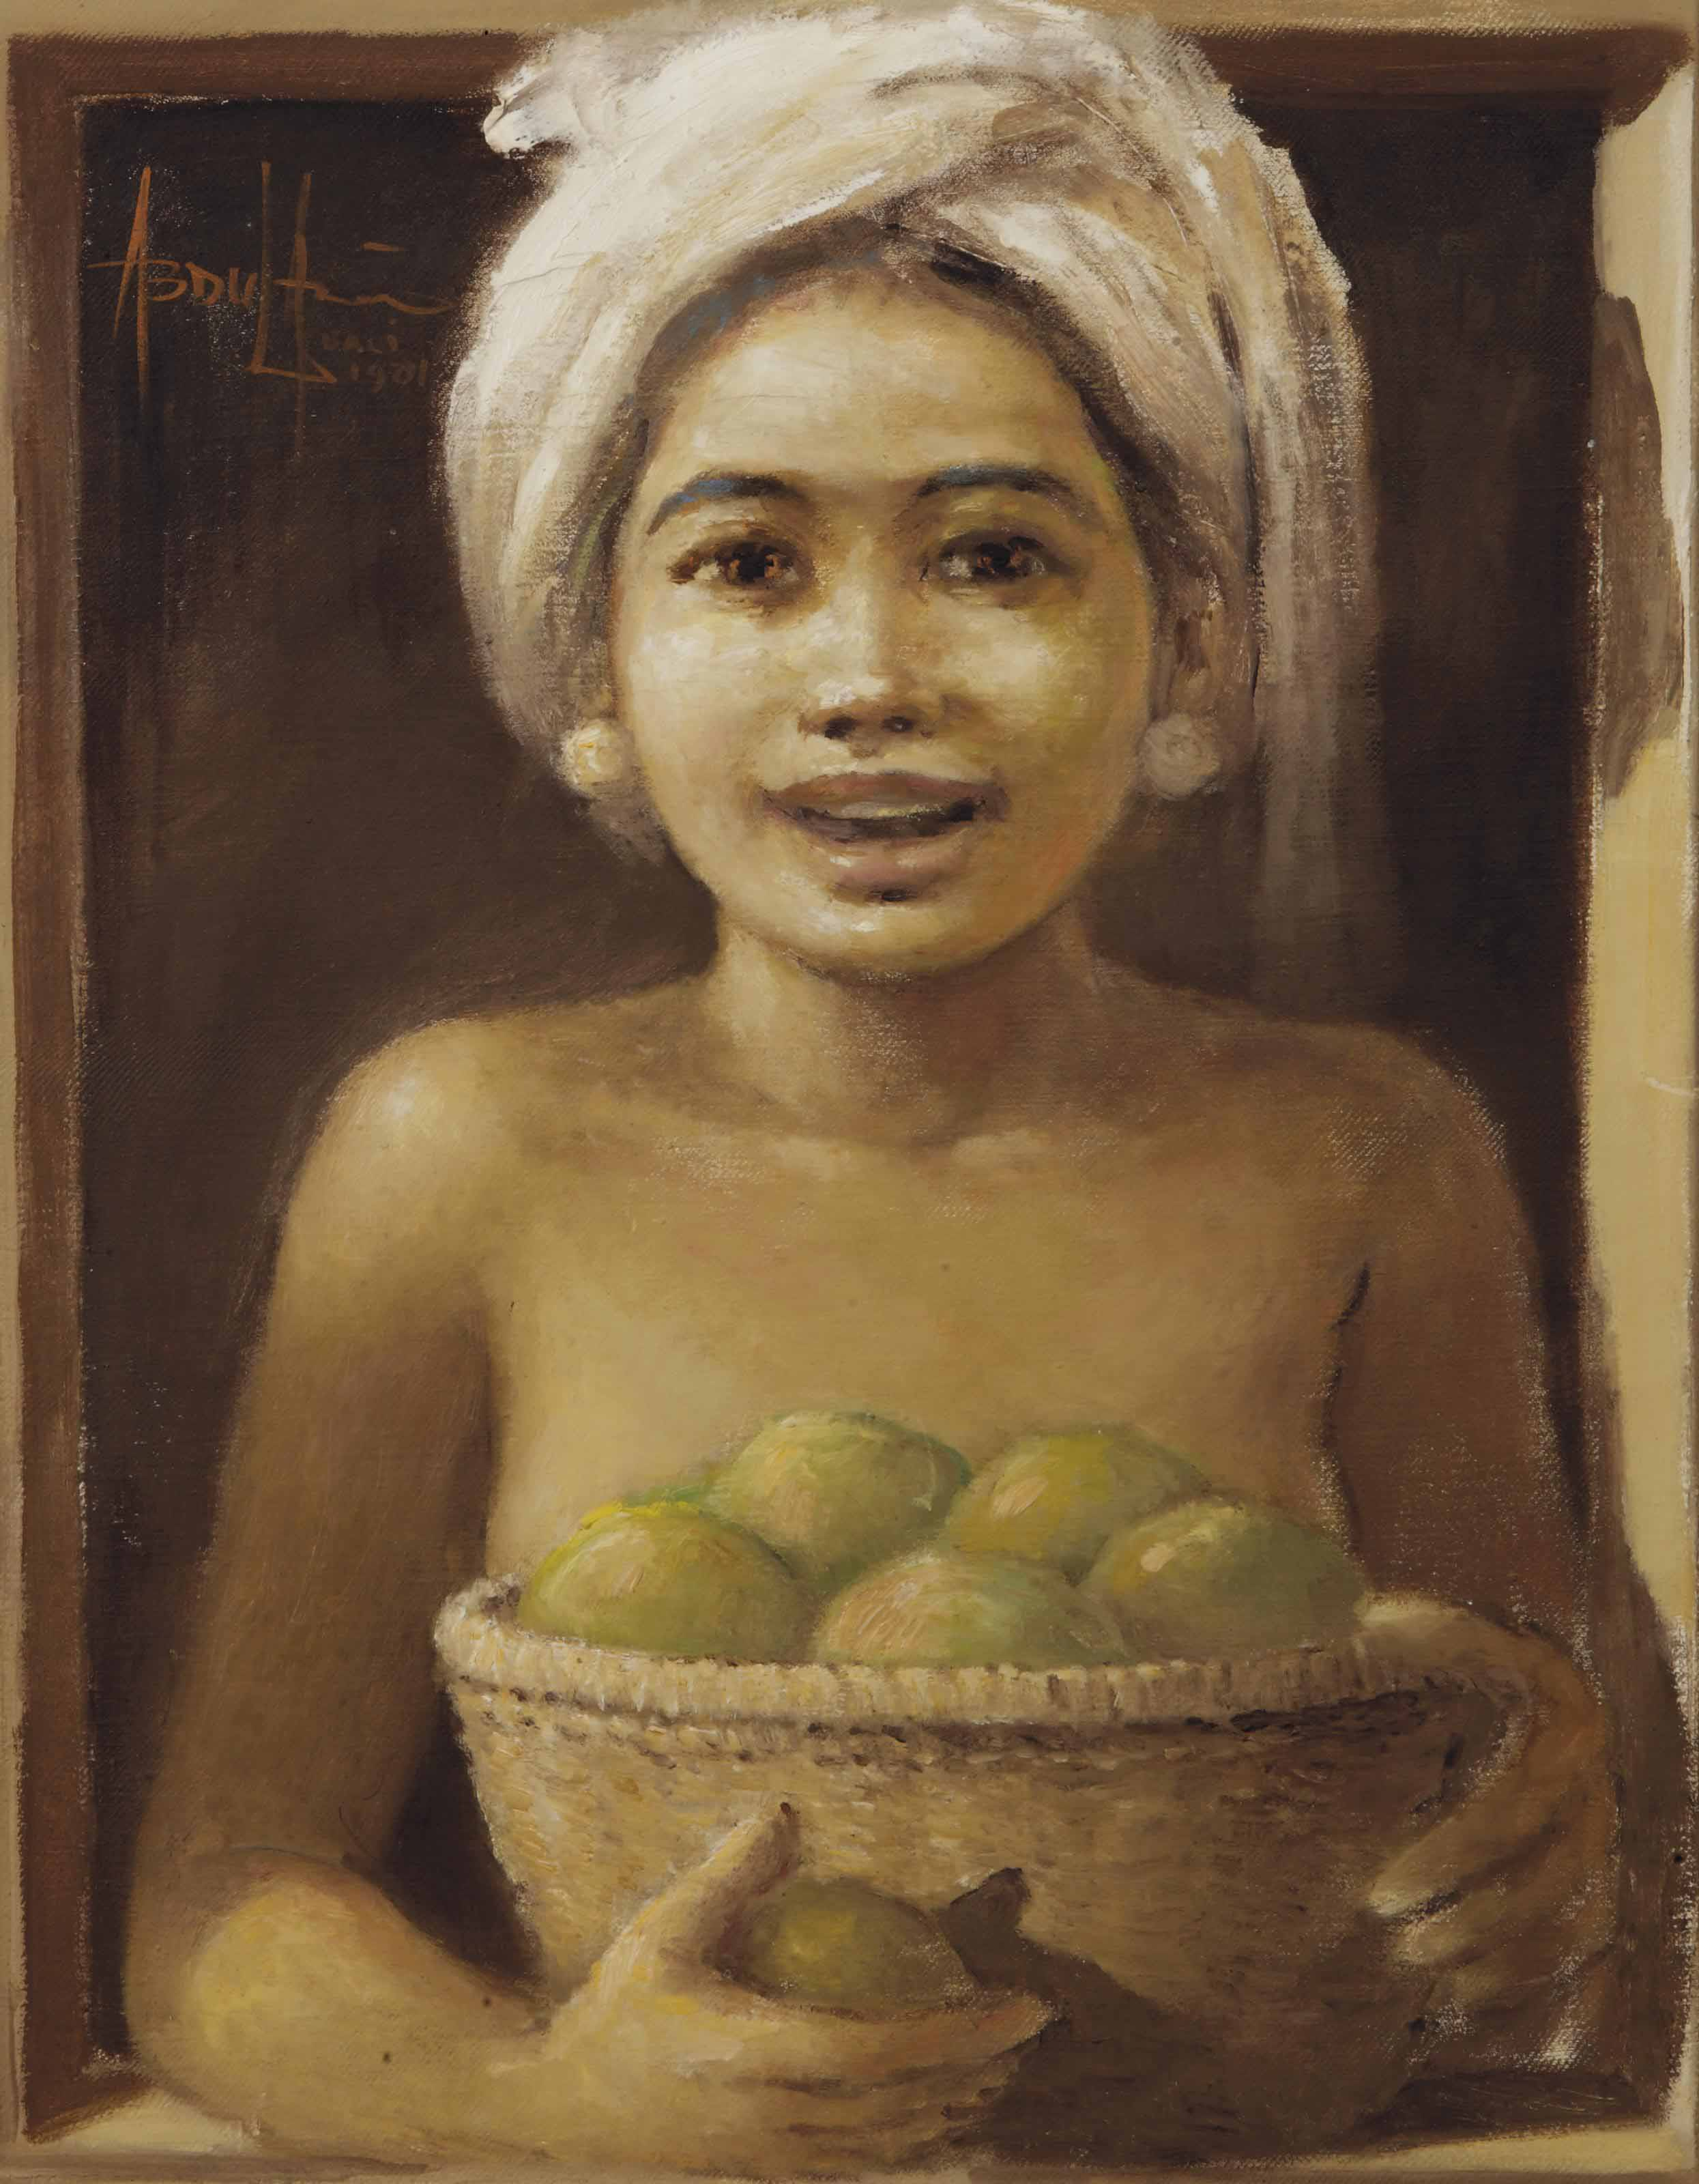 Balinese girl with a basket of fruits